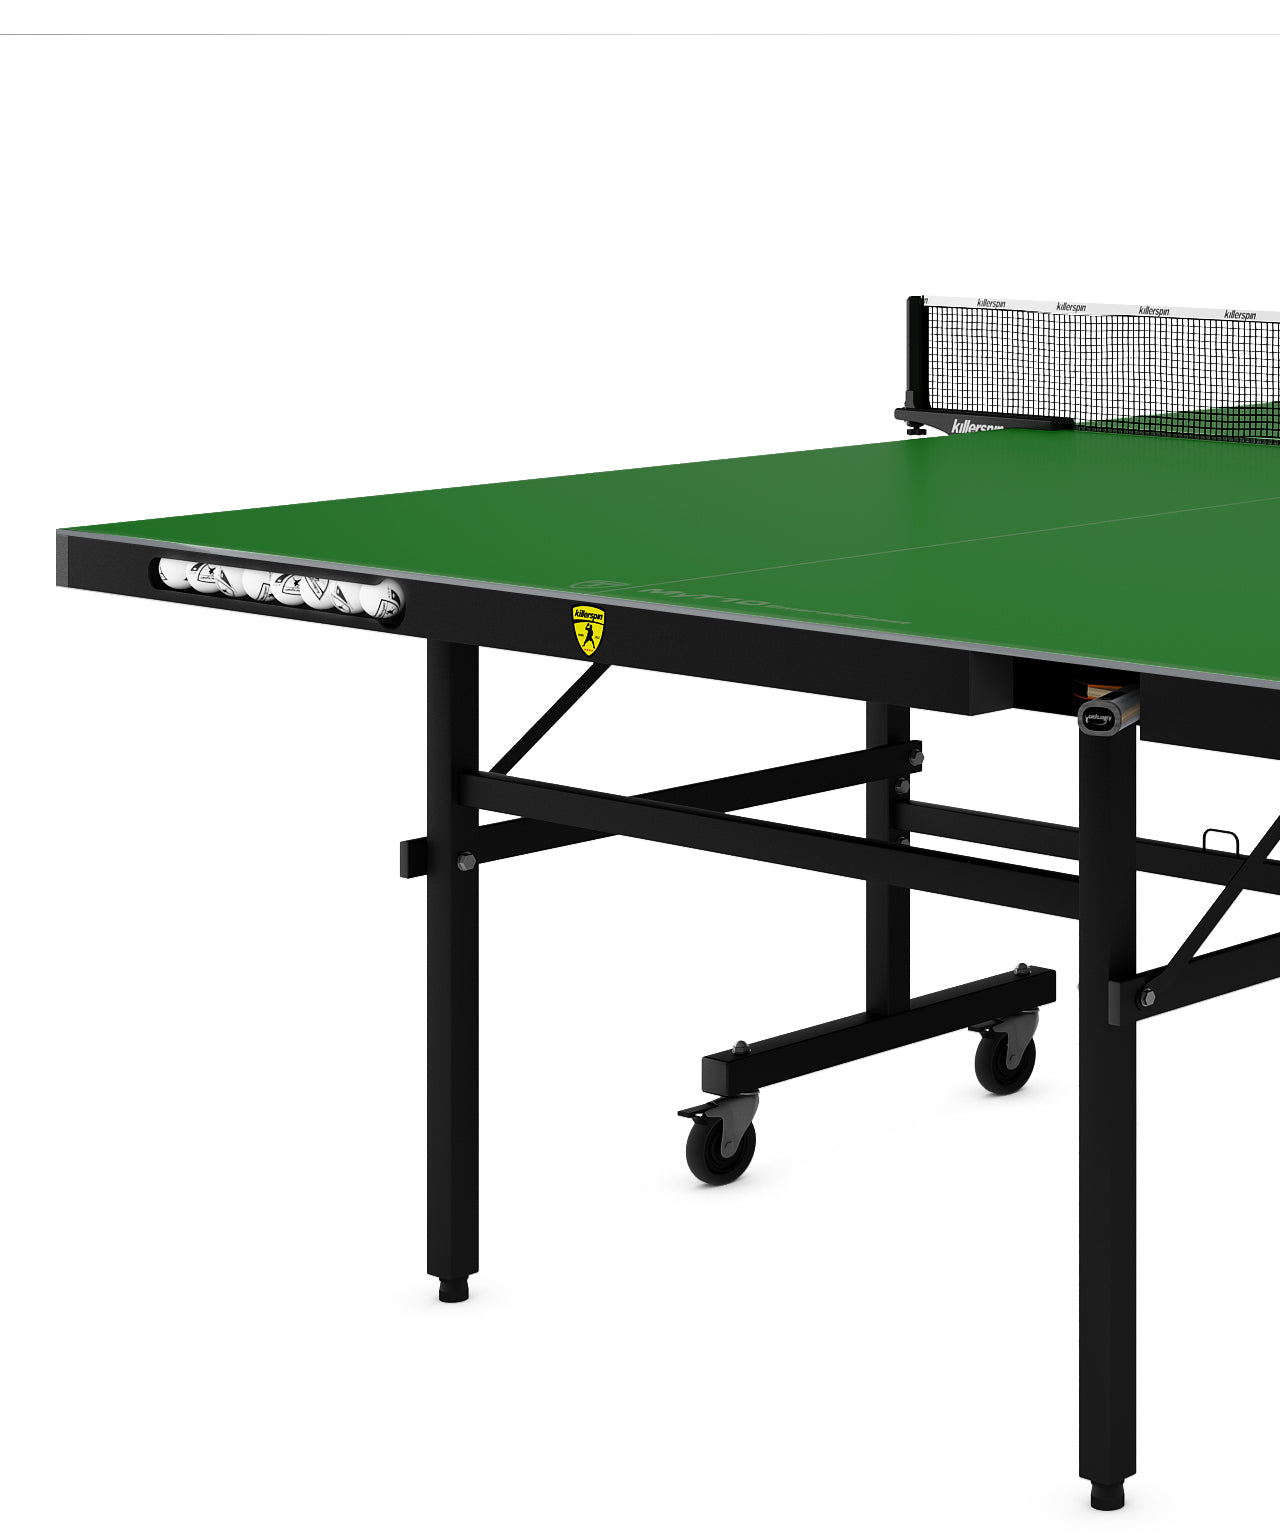 Killerspin Outdoor Ping Pong Table MyT10 Emerald Coast - Top